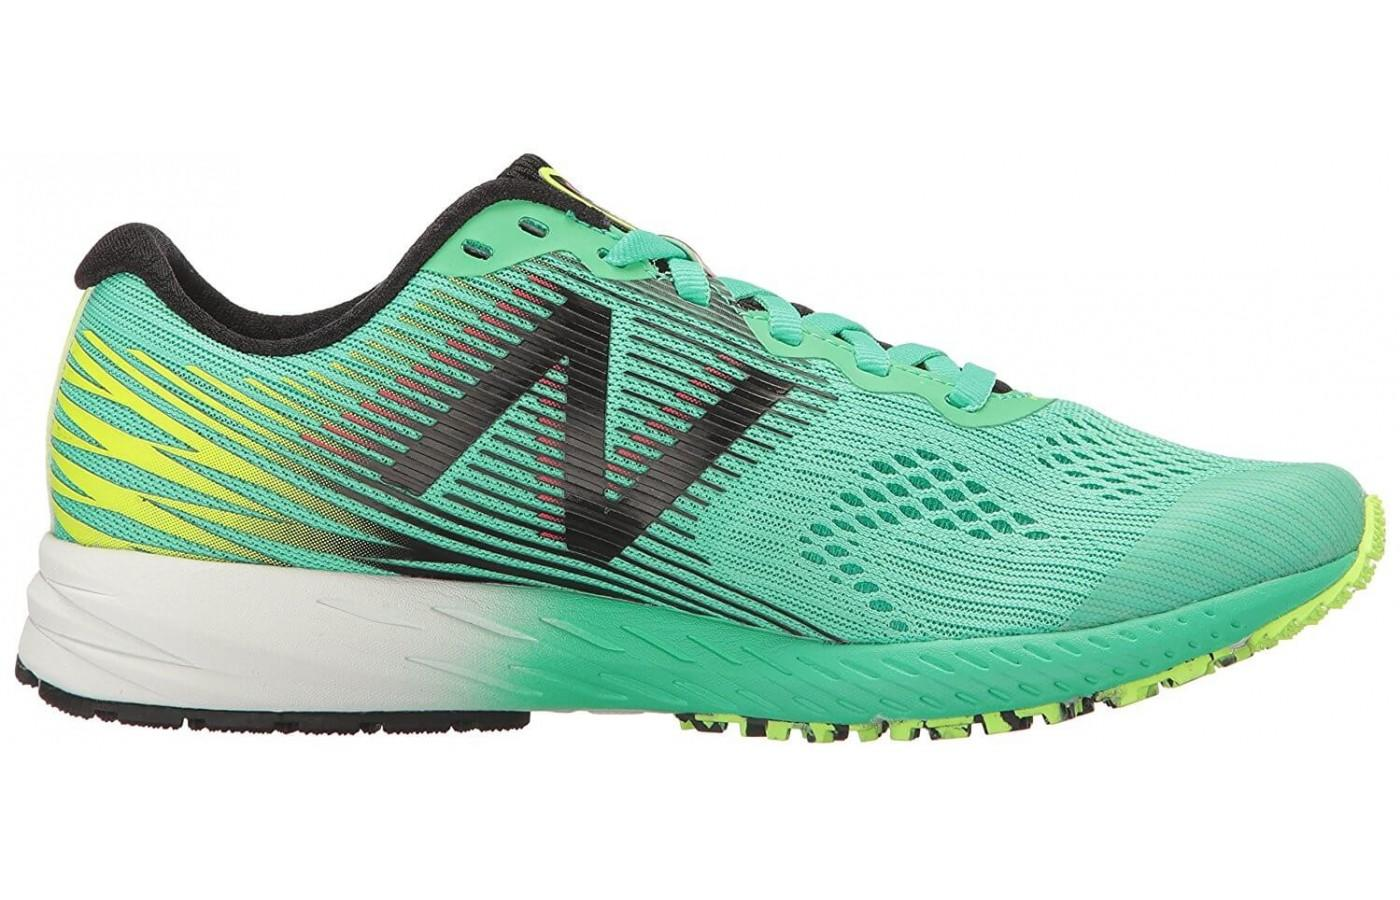 The New Balance 1400v5 uses a no sew material application